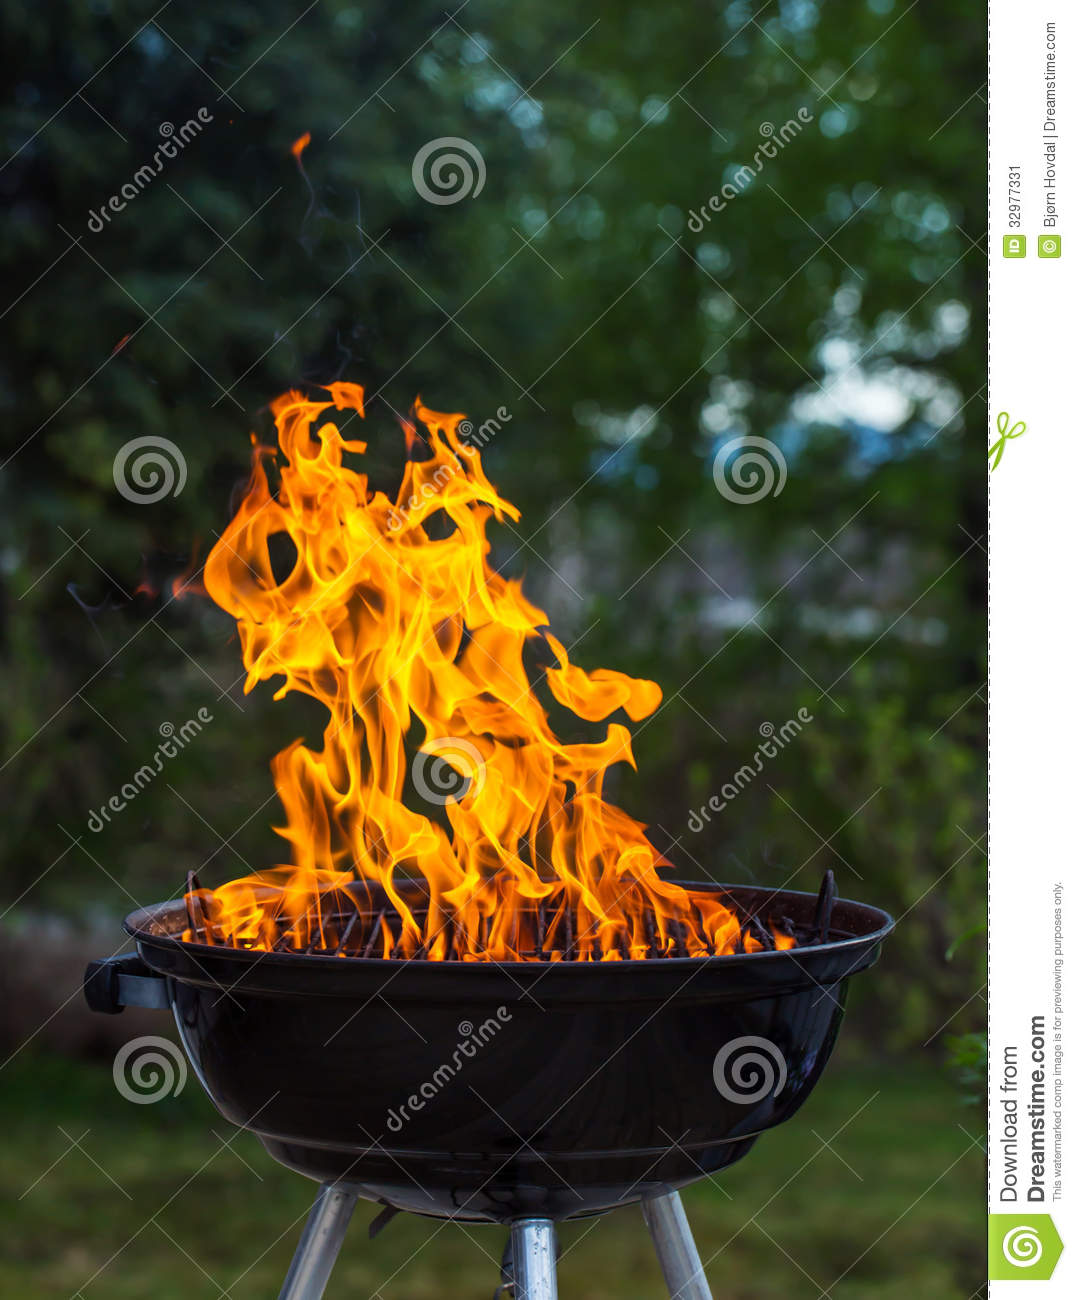 Grill in flames